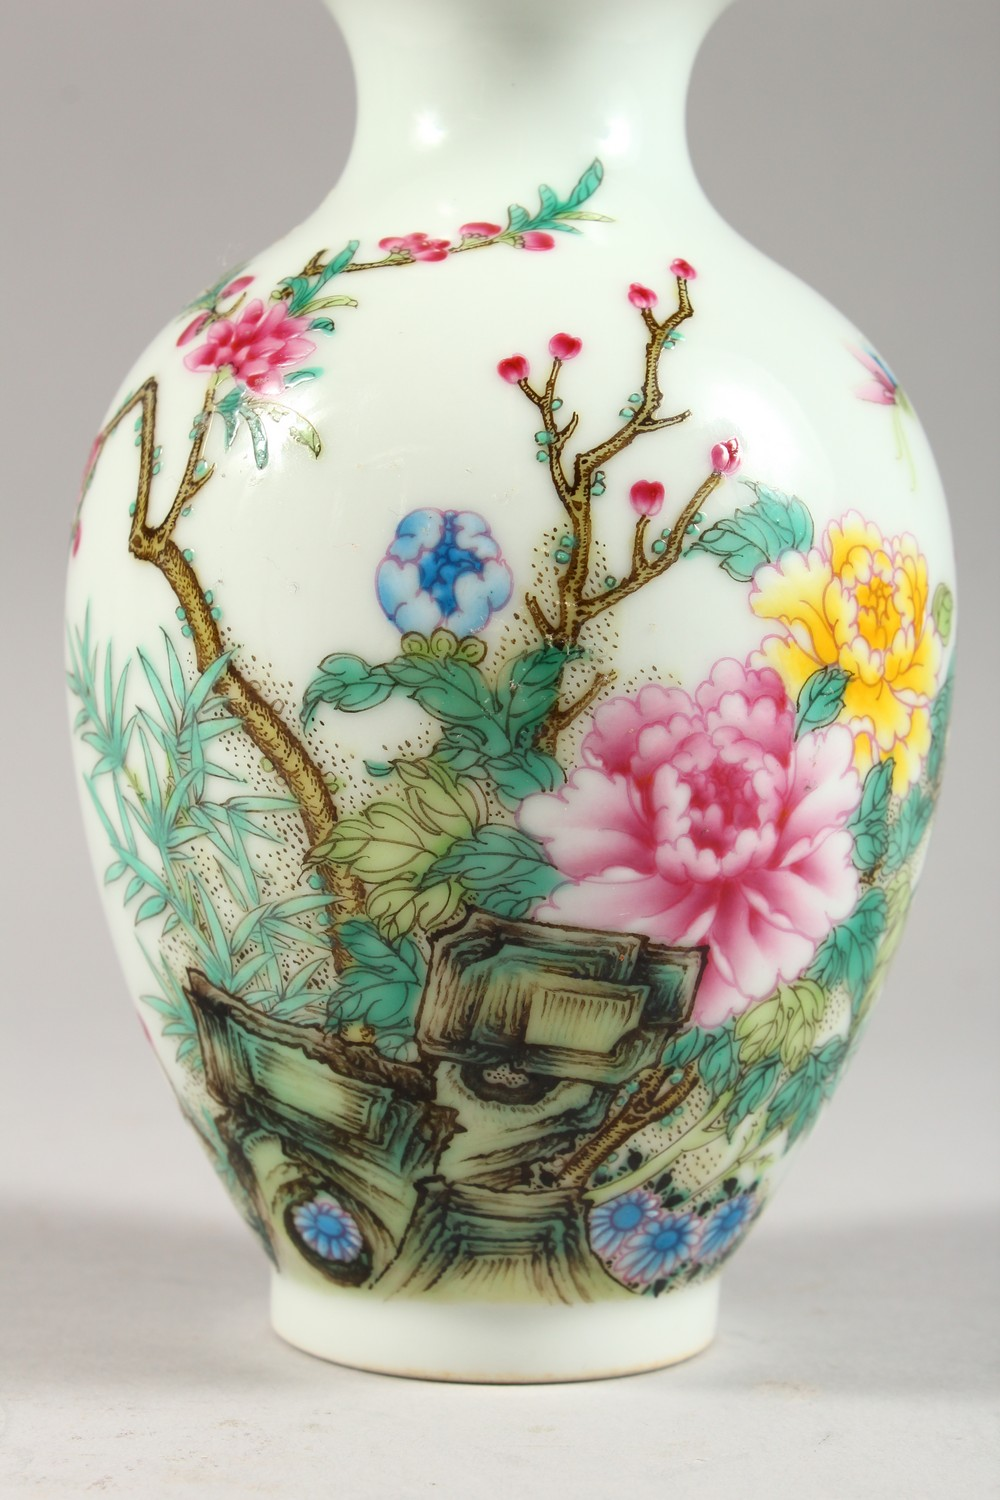 A GOOD CHINESE REPUBLIC STYLE FAMILLE ROSE PORCELAIN VASE, the body decorated with scenes of birds - Image 2 of 8